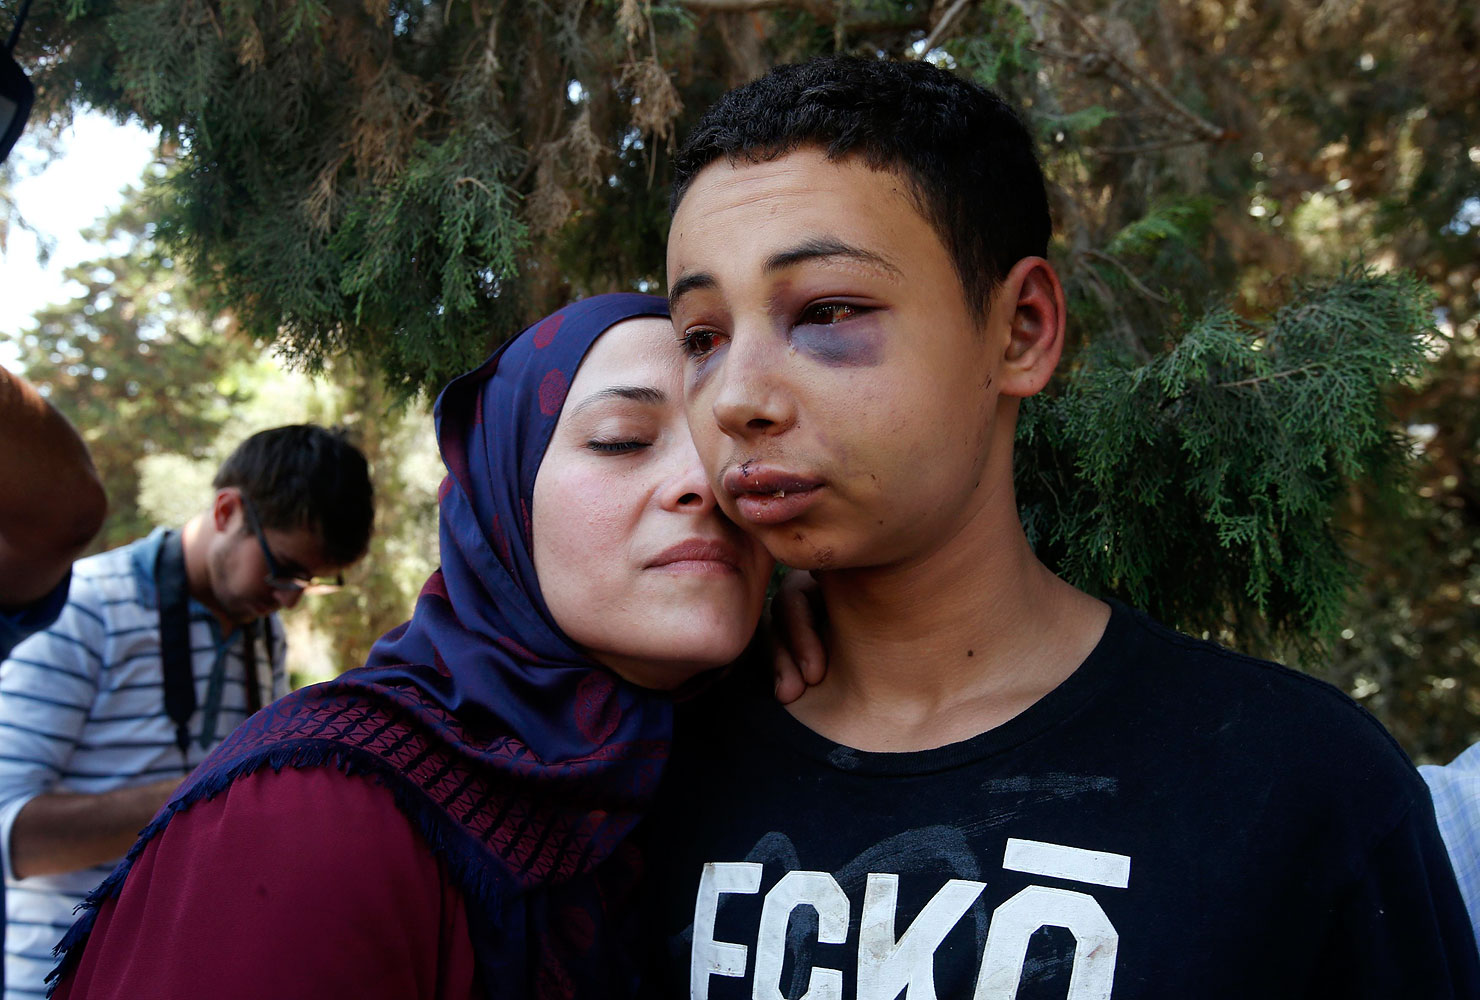 Tariq Khdeir, right, is greeted by his mother after being released from jail in Jerusalem July 6, 2014.